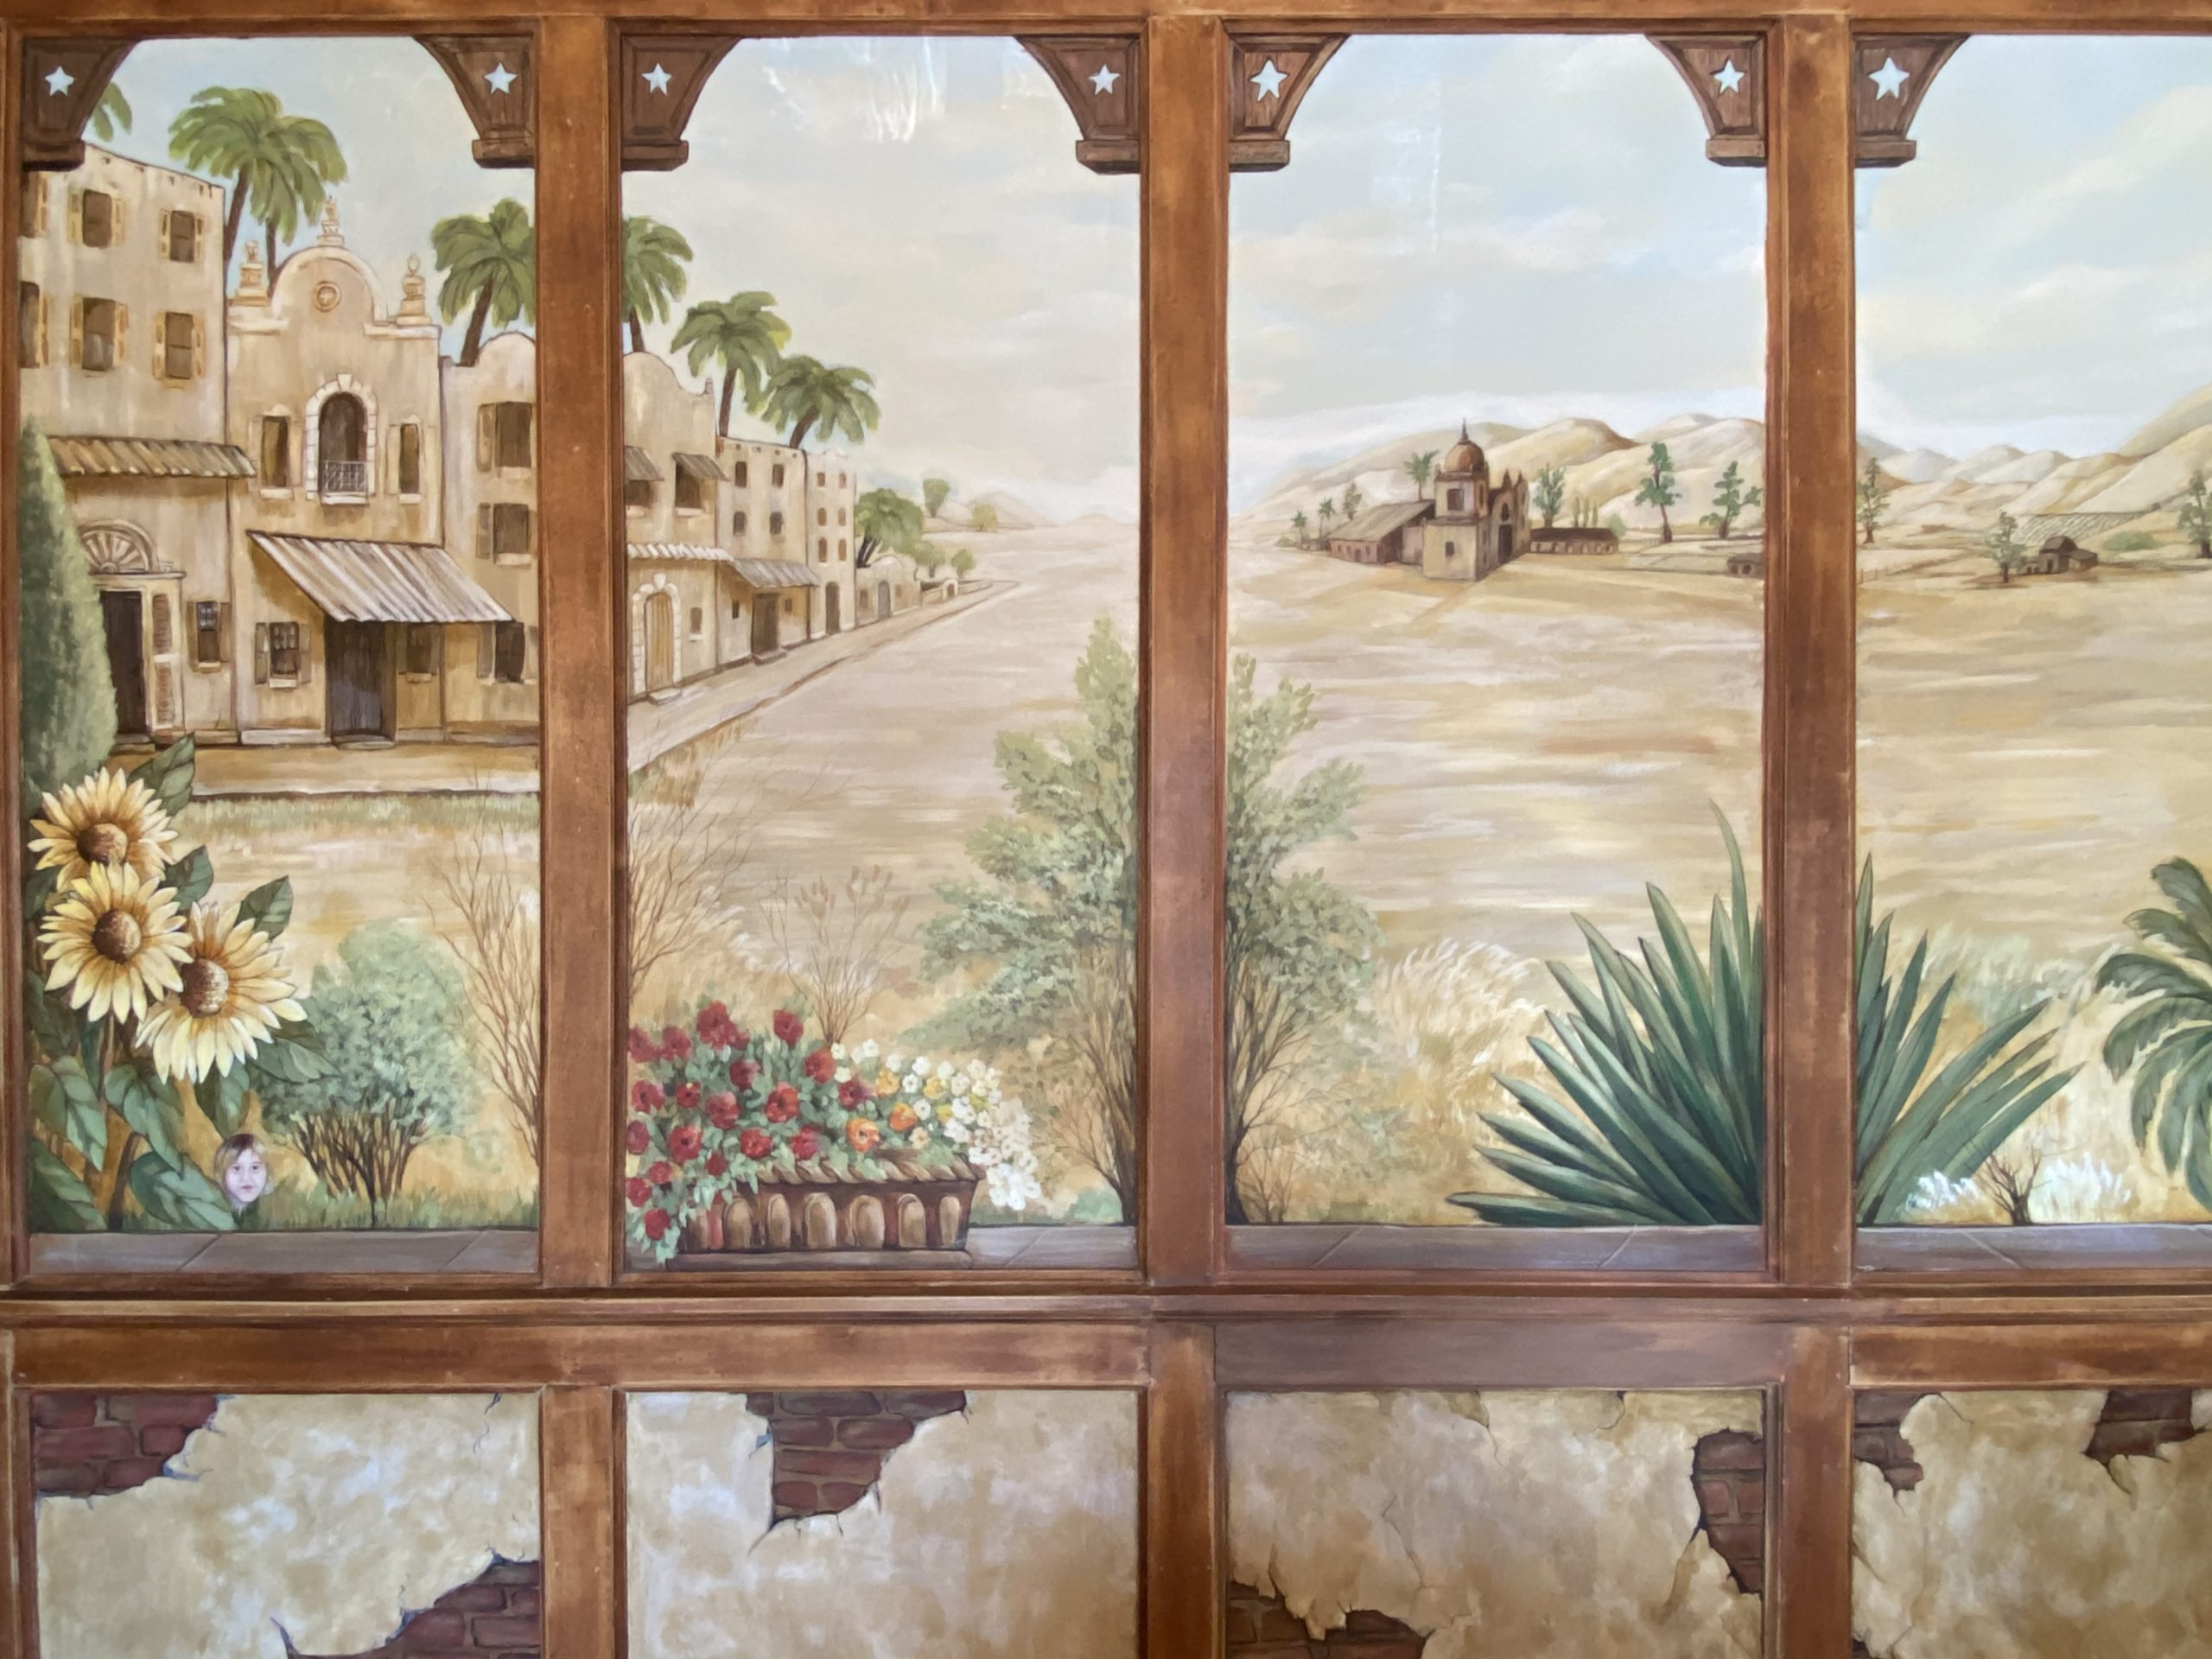 Murals at The Mission Inn